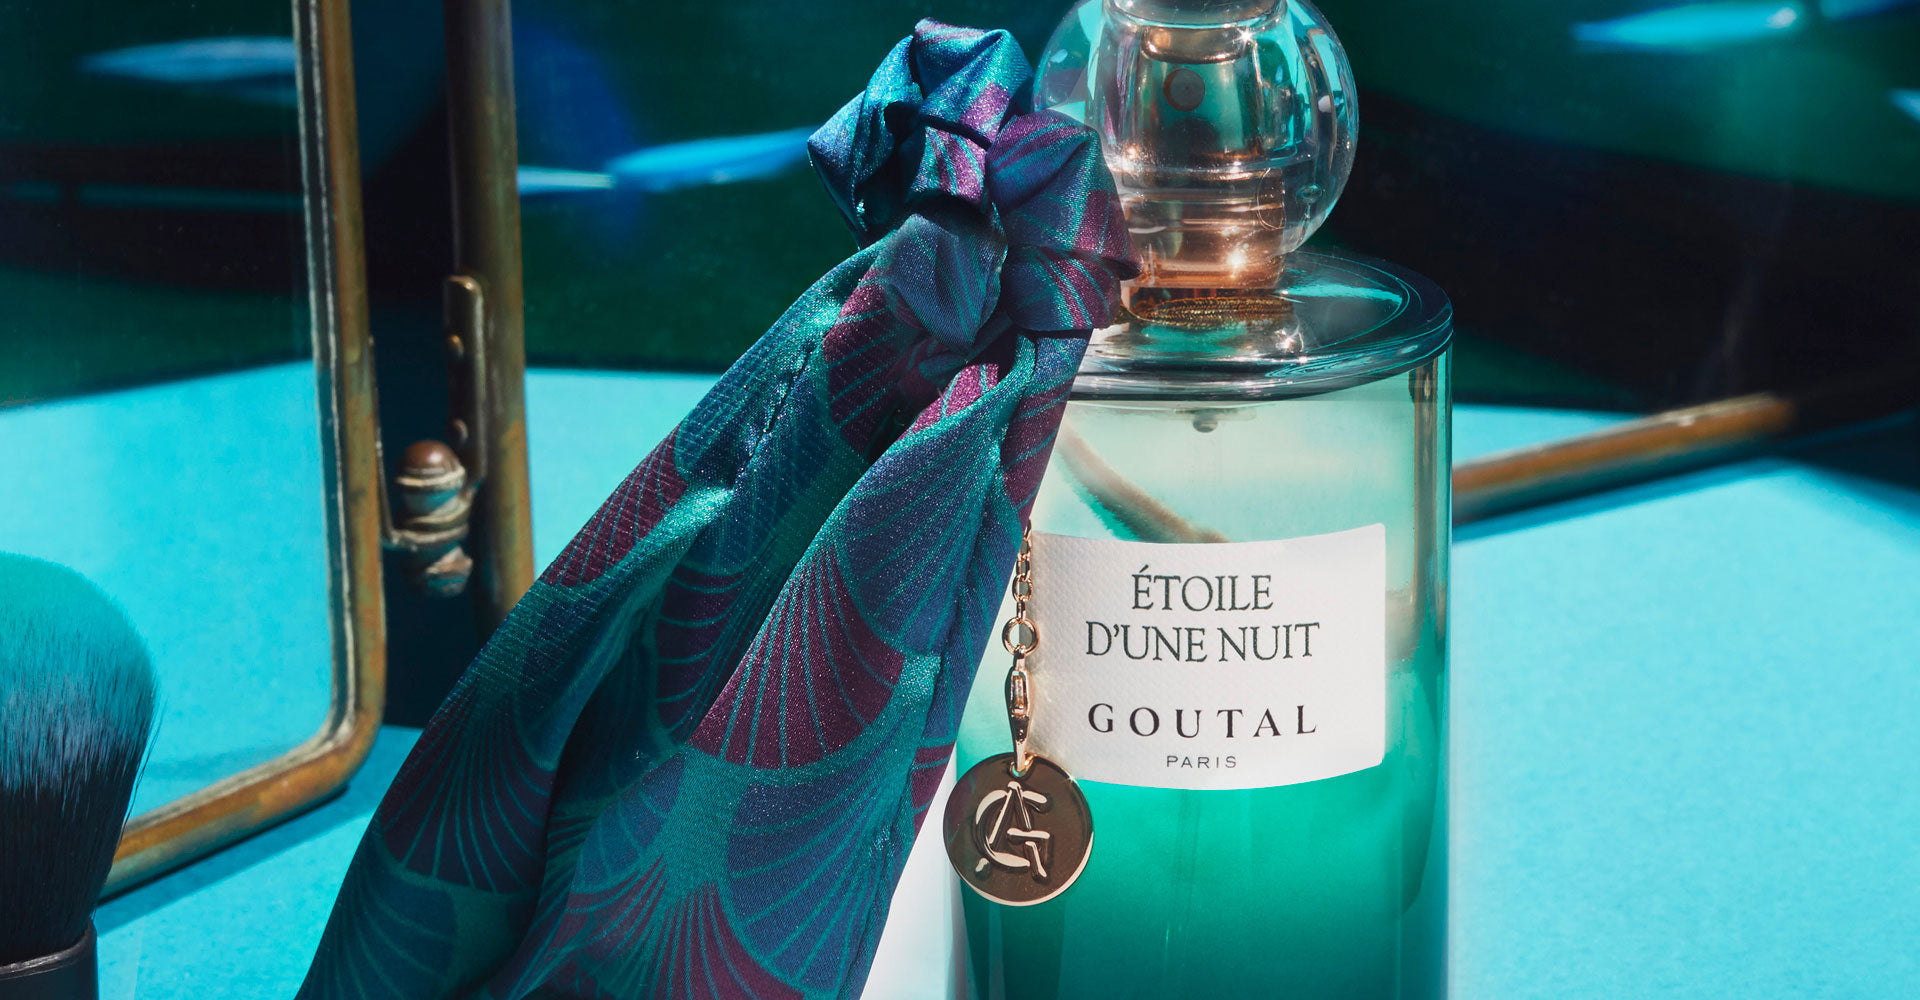 Goutal fragrances